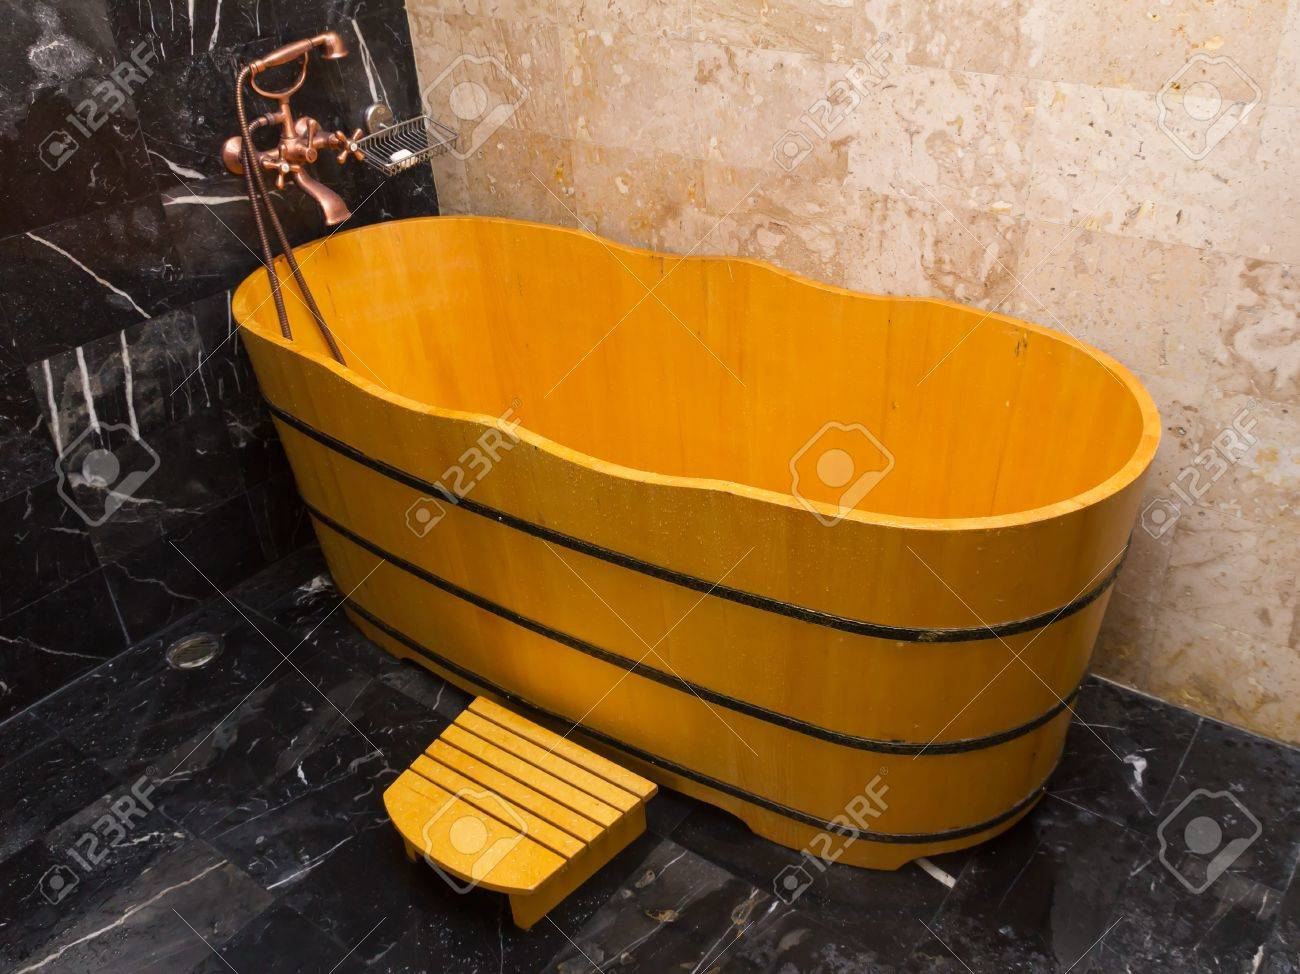 Wooden Bathtub In A Bathroom Stock Photo Picture And Royalty Free Image Image 13920237